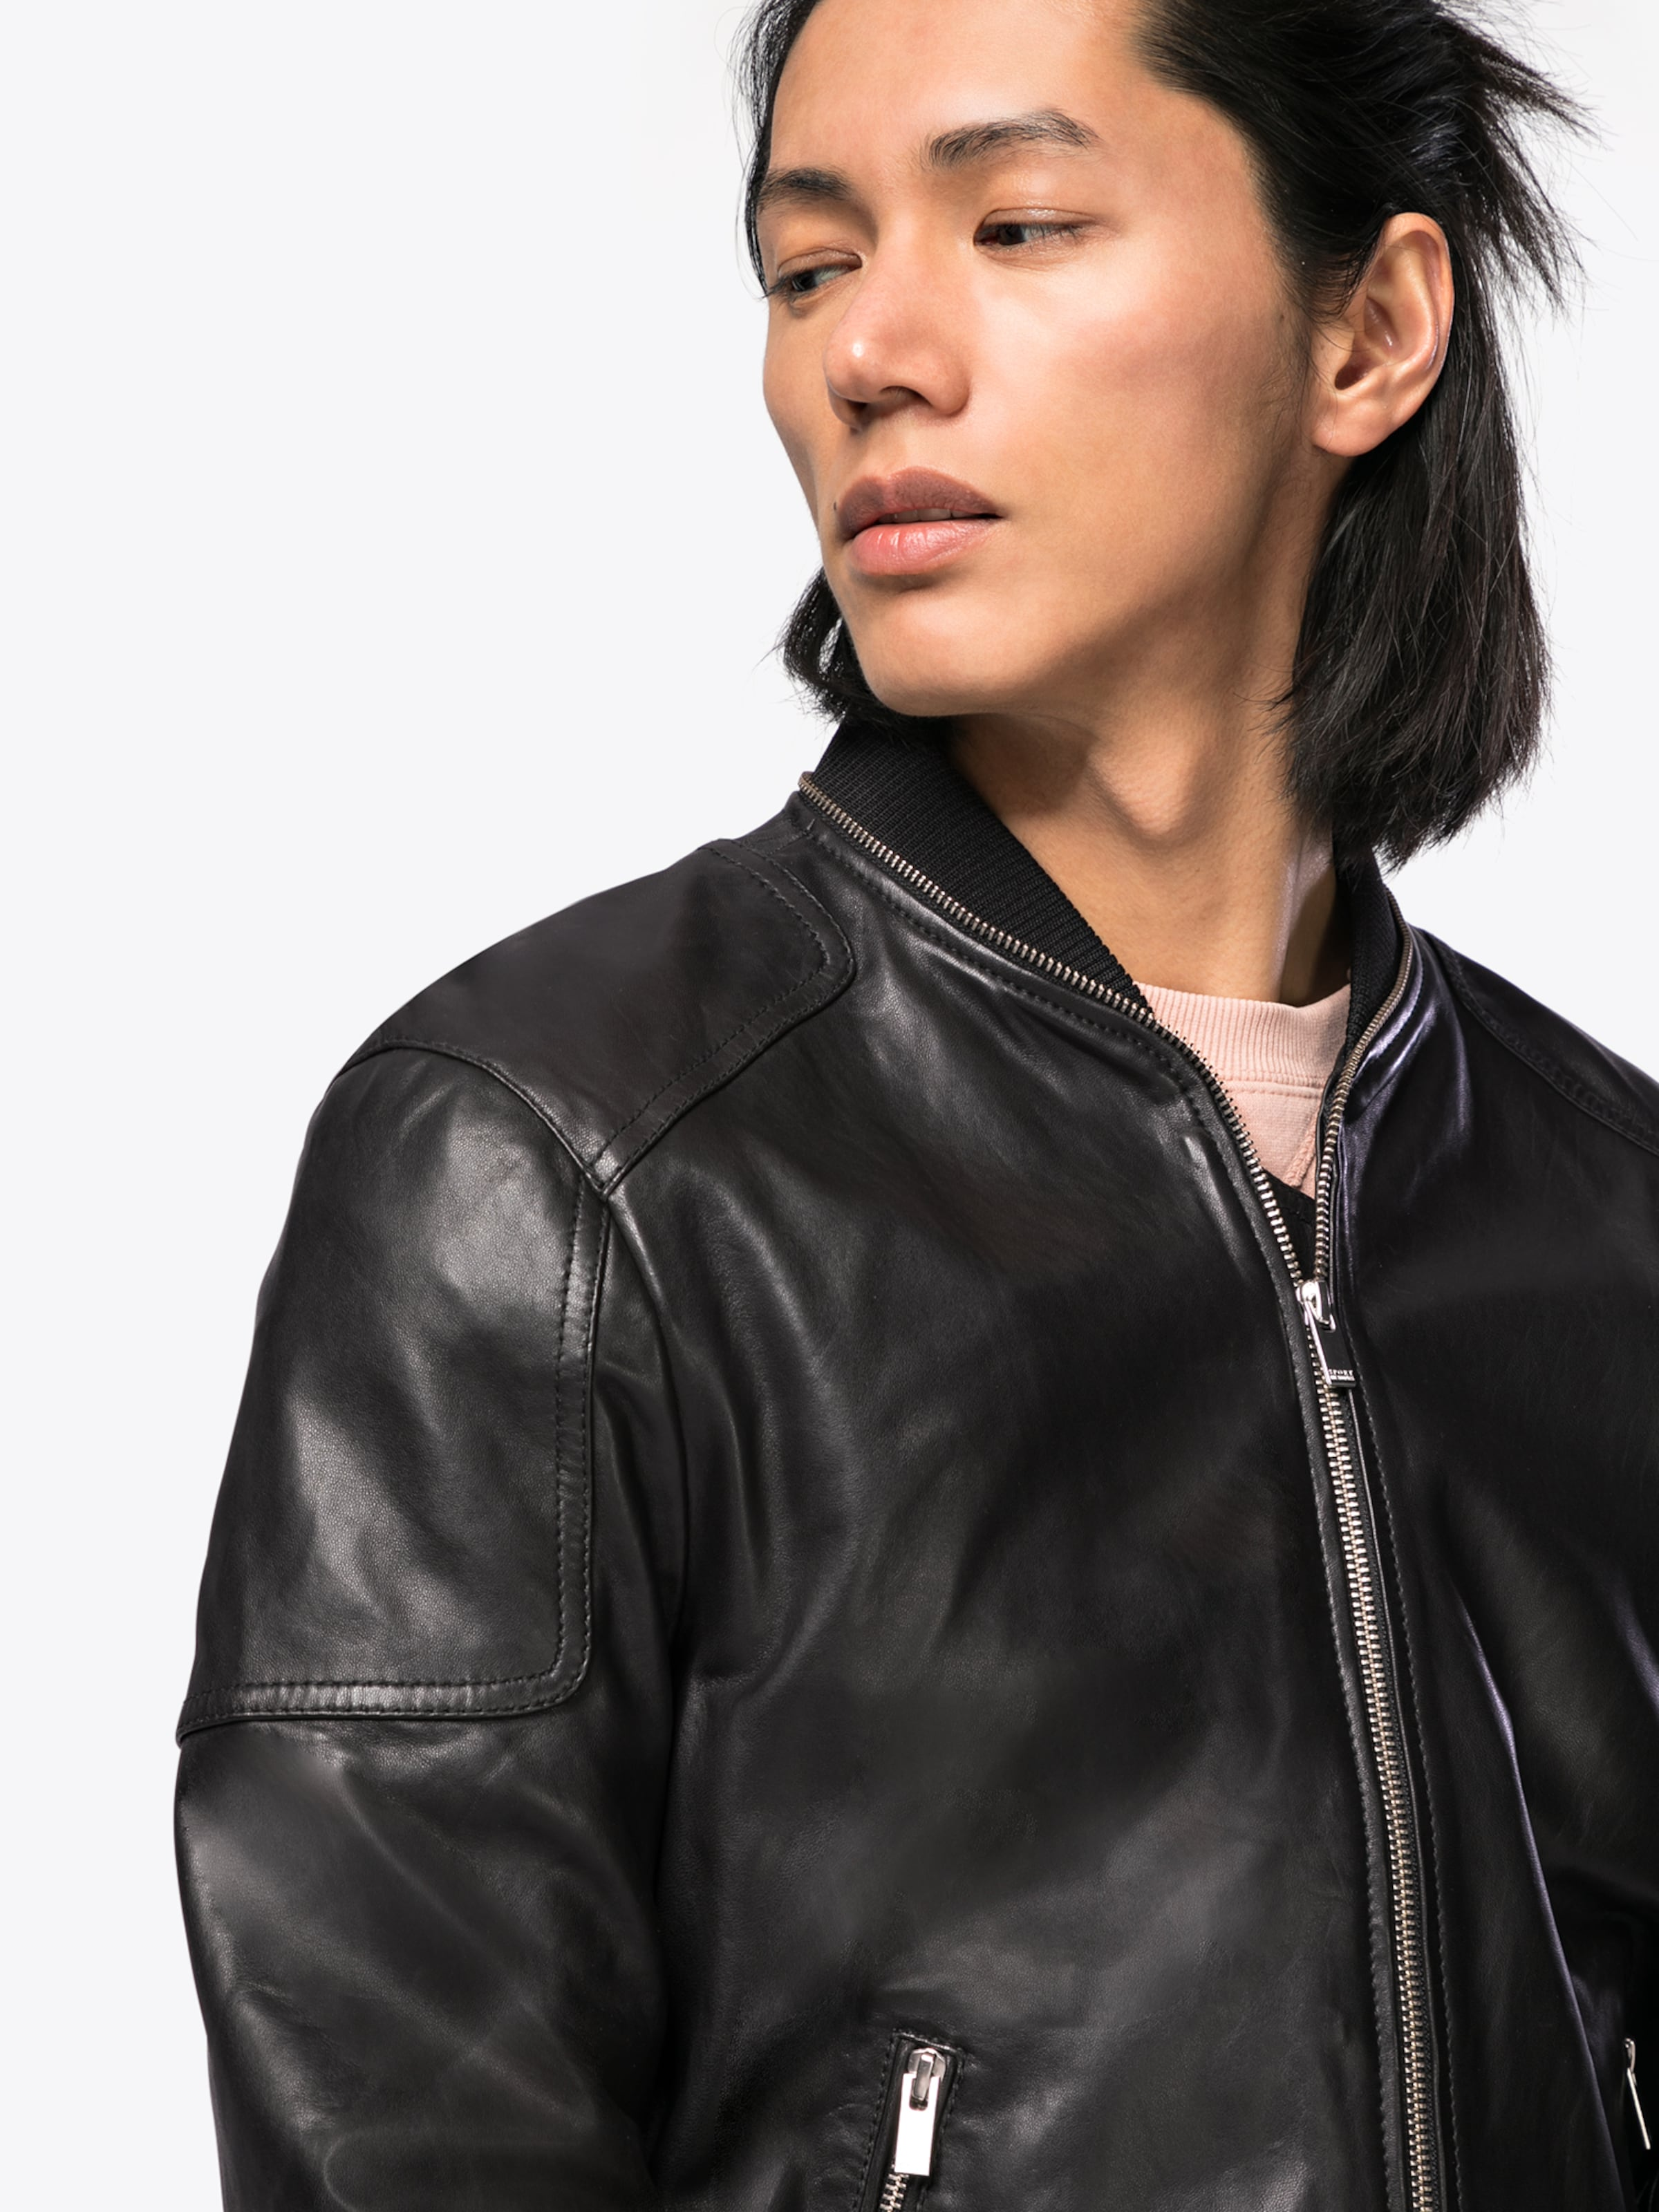 THE KOOPLES SPORT Jacke 'TEDDY-STYLE LEATHER JACKET WITH A ZIP AROUND THE COLLAR' Billig Wie Viel Qualität Für Freies Verschiffen Verkauf Klassische Online-Verkauf Rabatt Shop-Angebot Kd0ewxIT